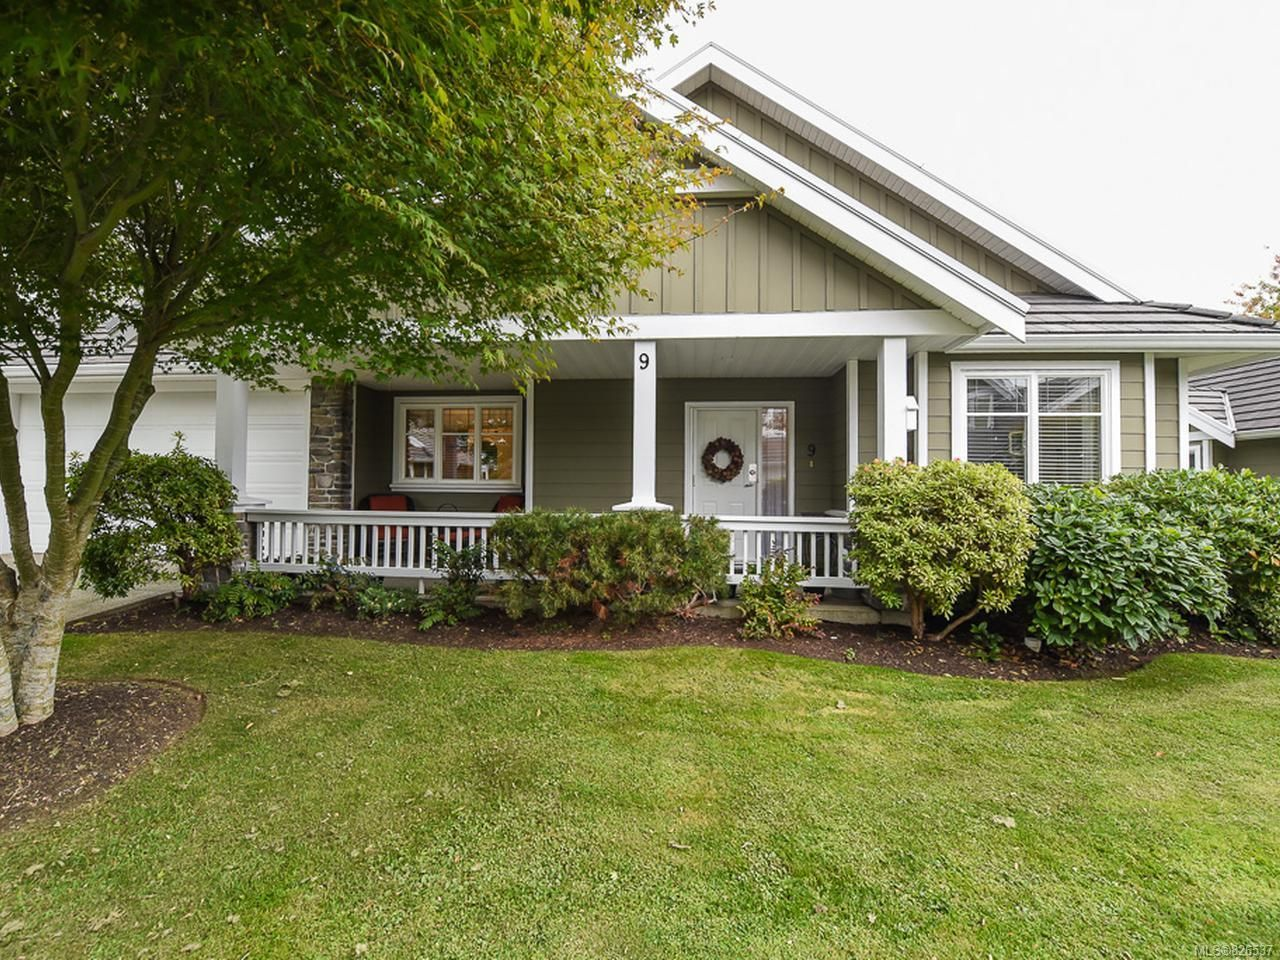 Main Photo: 9 737 ROYAL PLACE in COURTENAY: CV Crown Isle Row/Townhouse for sale (Comox Valley)  : MLS®# 826537